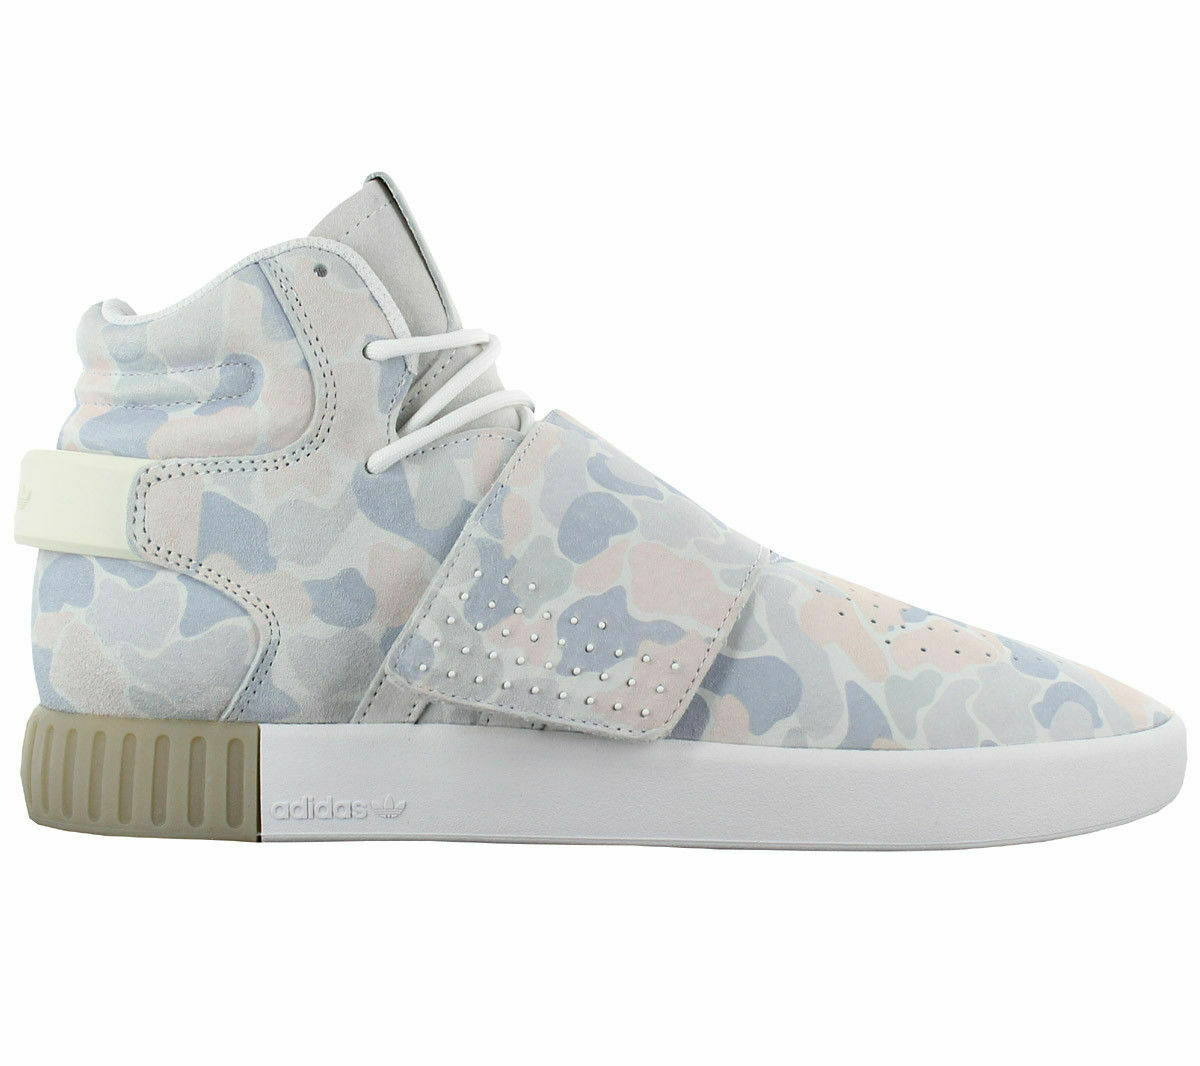 NEW adidas Tubular Invader Strap BB8394 Men''s Sneakers SALE 10.5